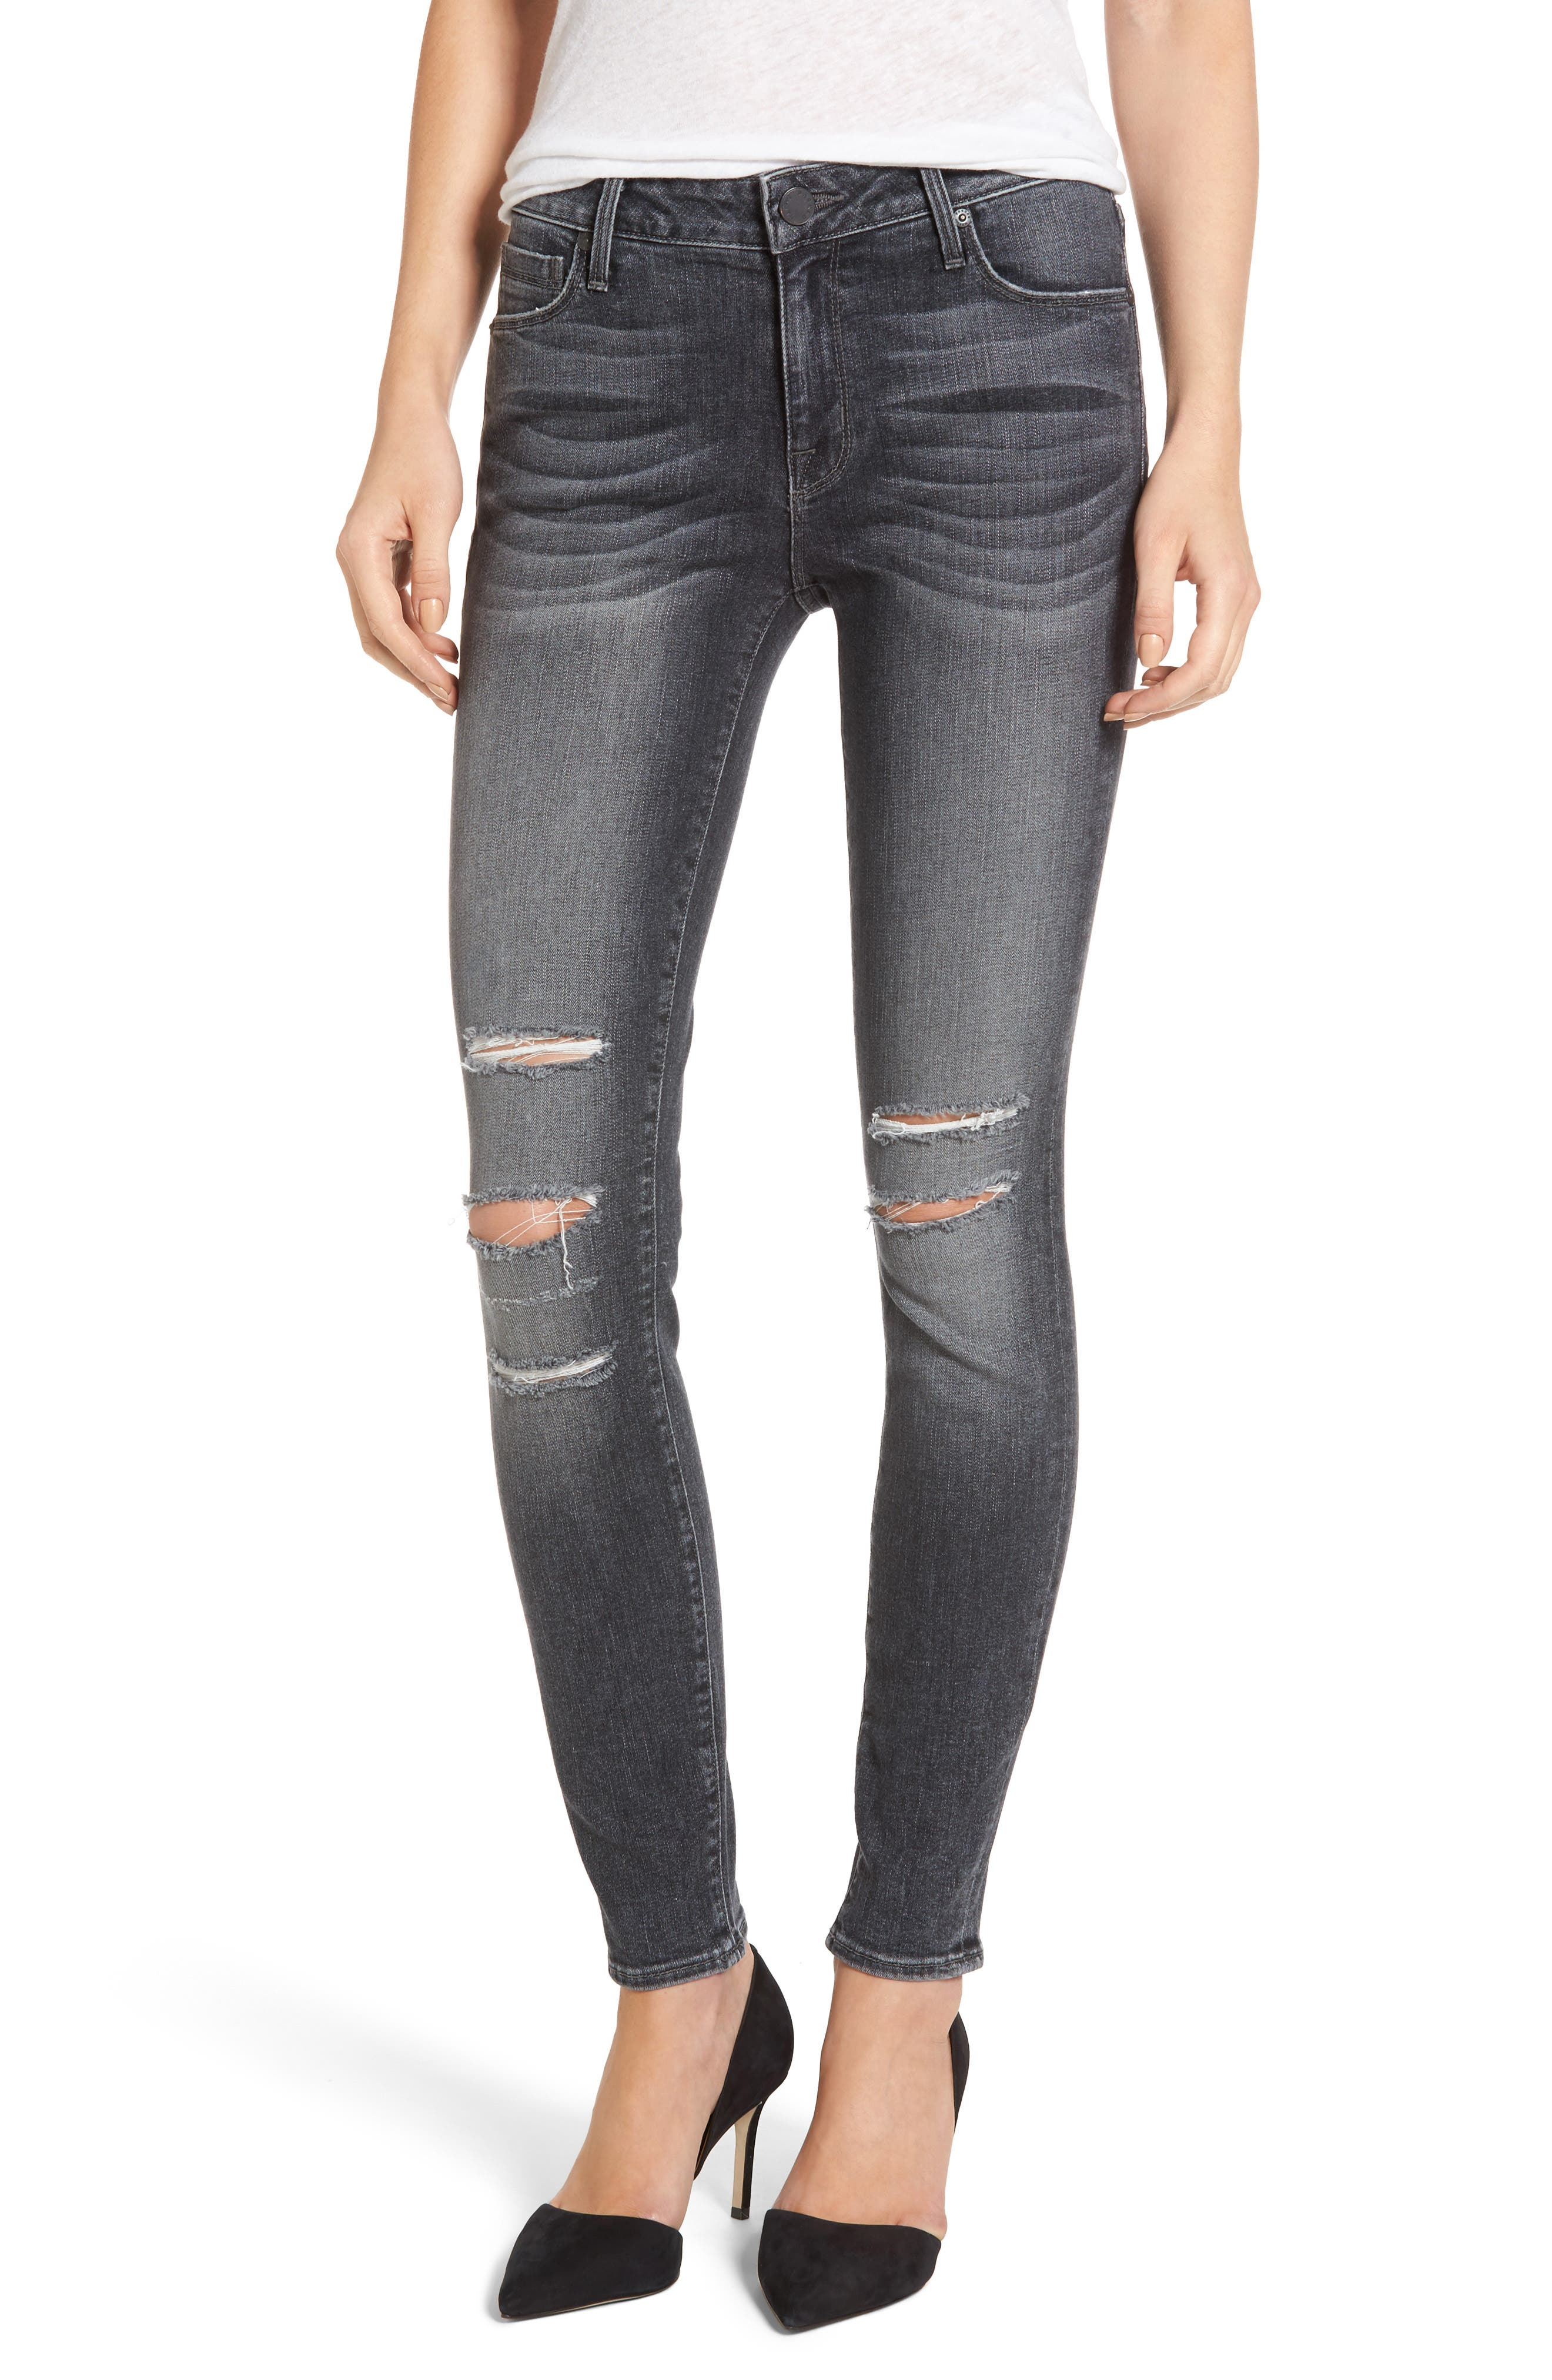 Main Image - PARKER SMITH Kam Mid-Rise Skinny Jeans (Grey Matter)